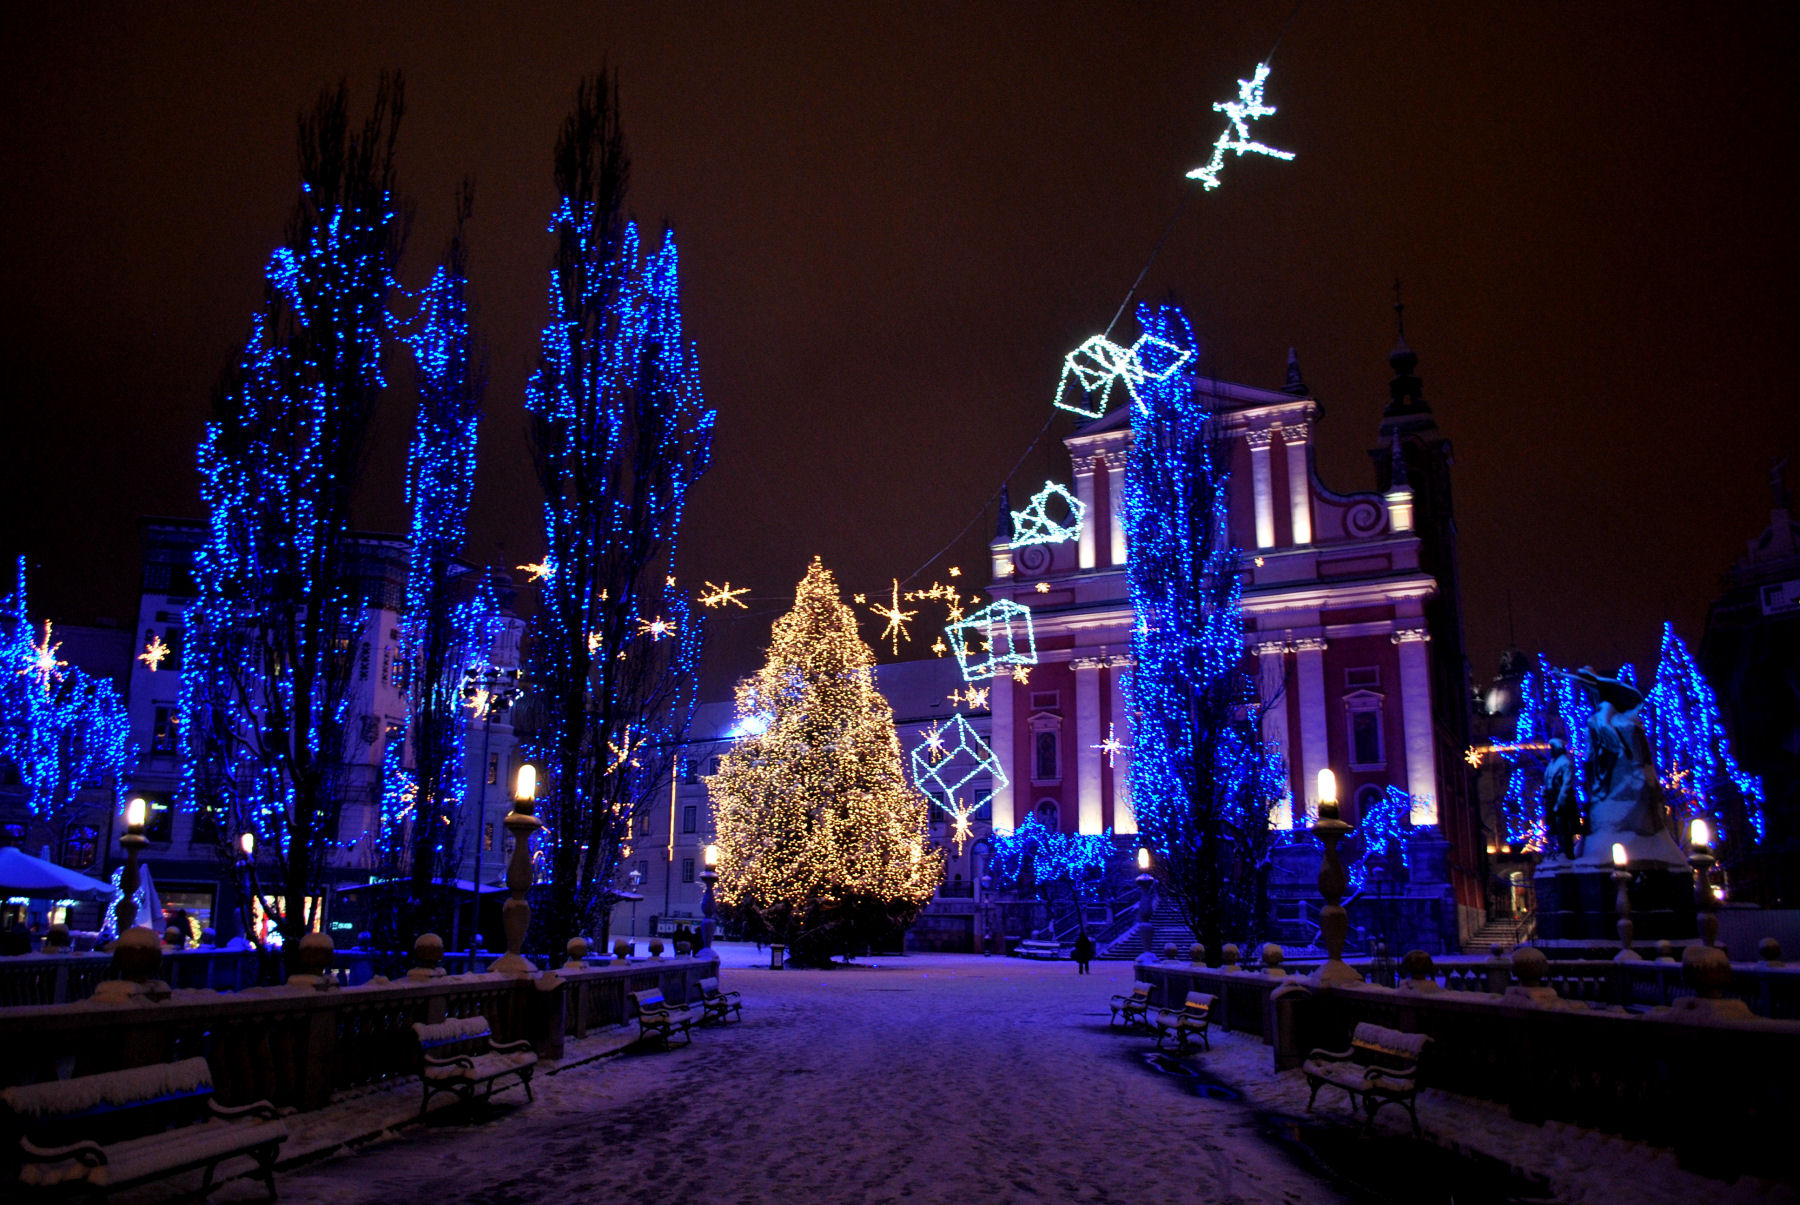 Every December, the Preseren square in Ljubljana is adorned with lights and Christmas decorations